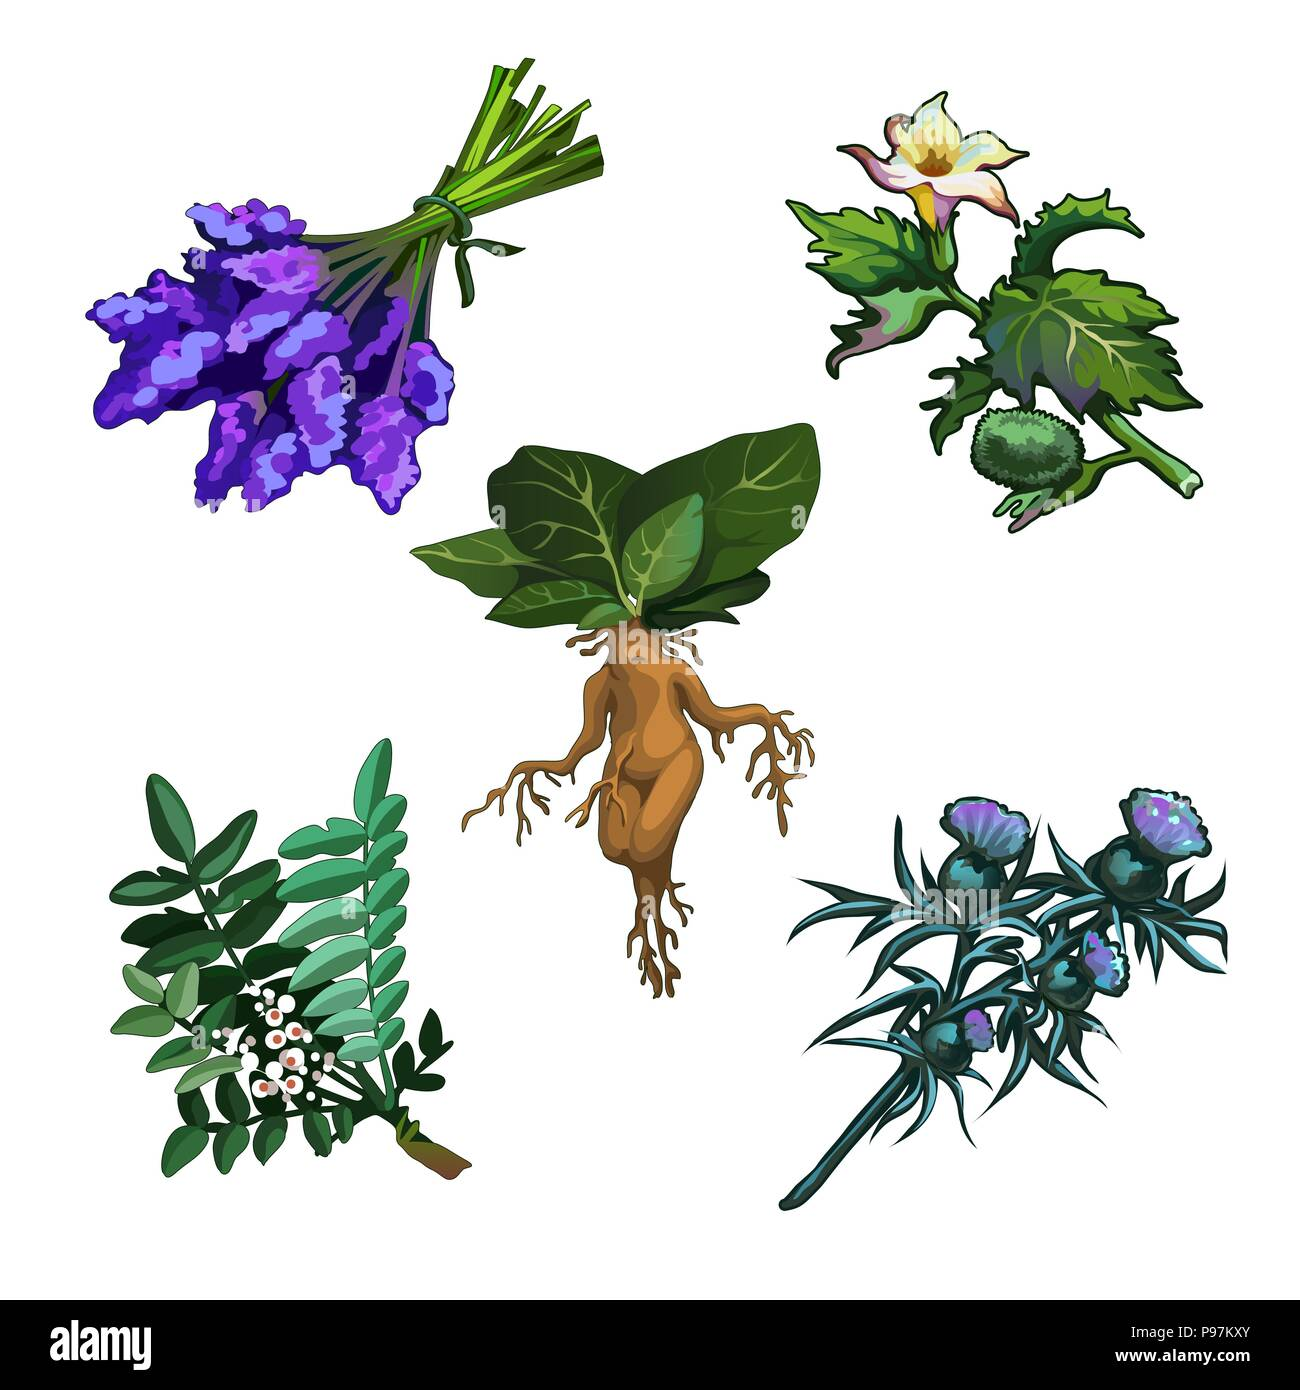 Set of noxious plants isolated on white background. Ingredients for magical potions. Common yew or Taxus baccata, Mandrake root, Thornapple or Datura stramonium, Milk Thistle or Silybum marianum - Stock Image